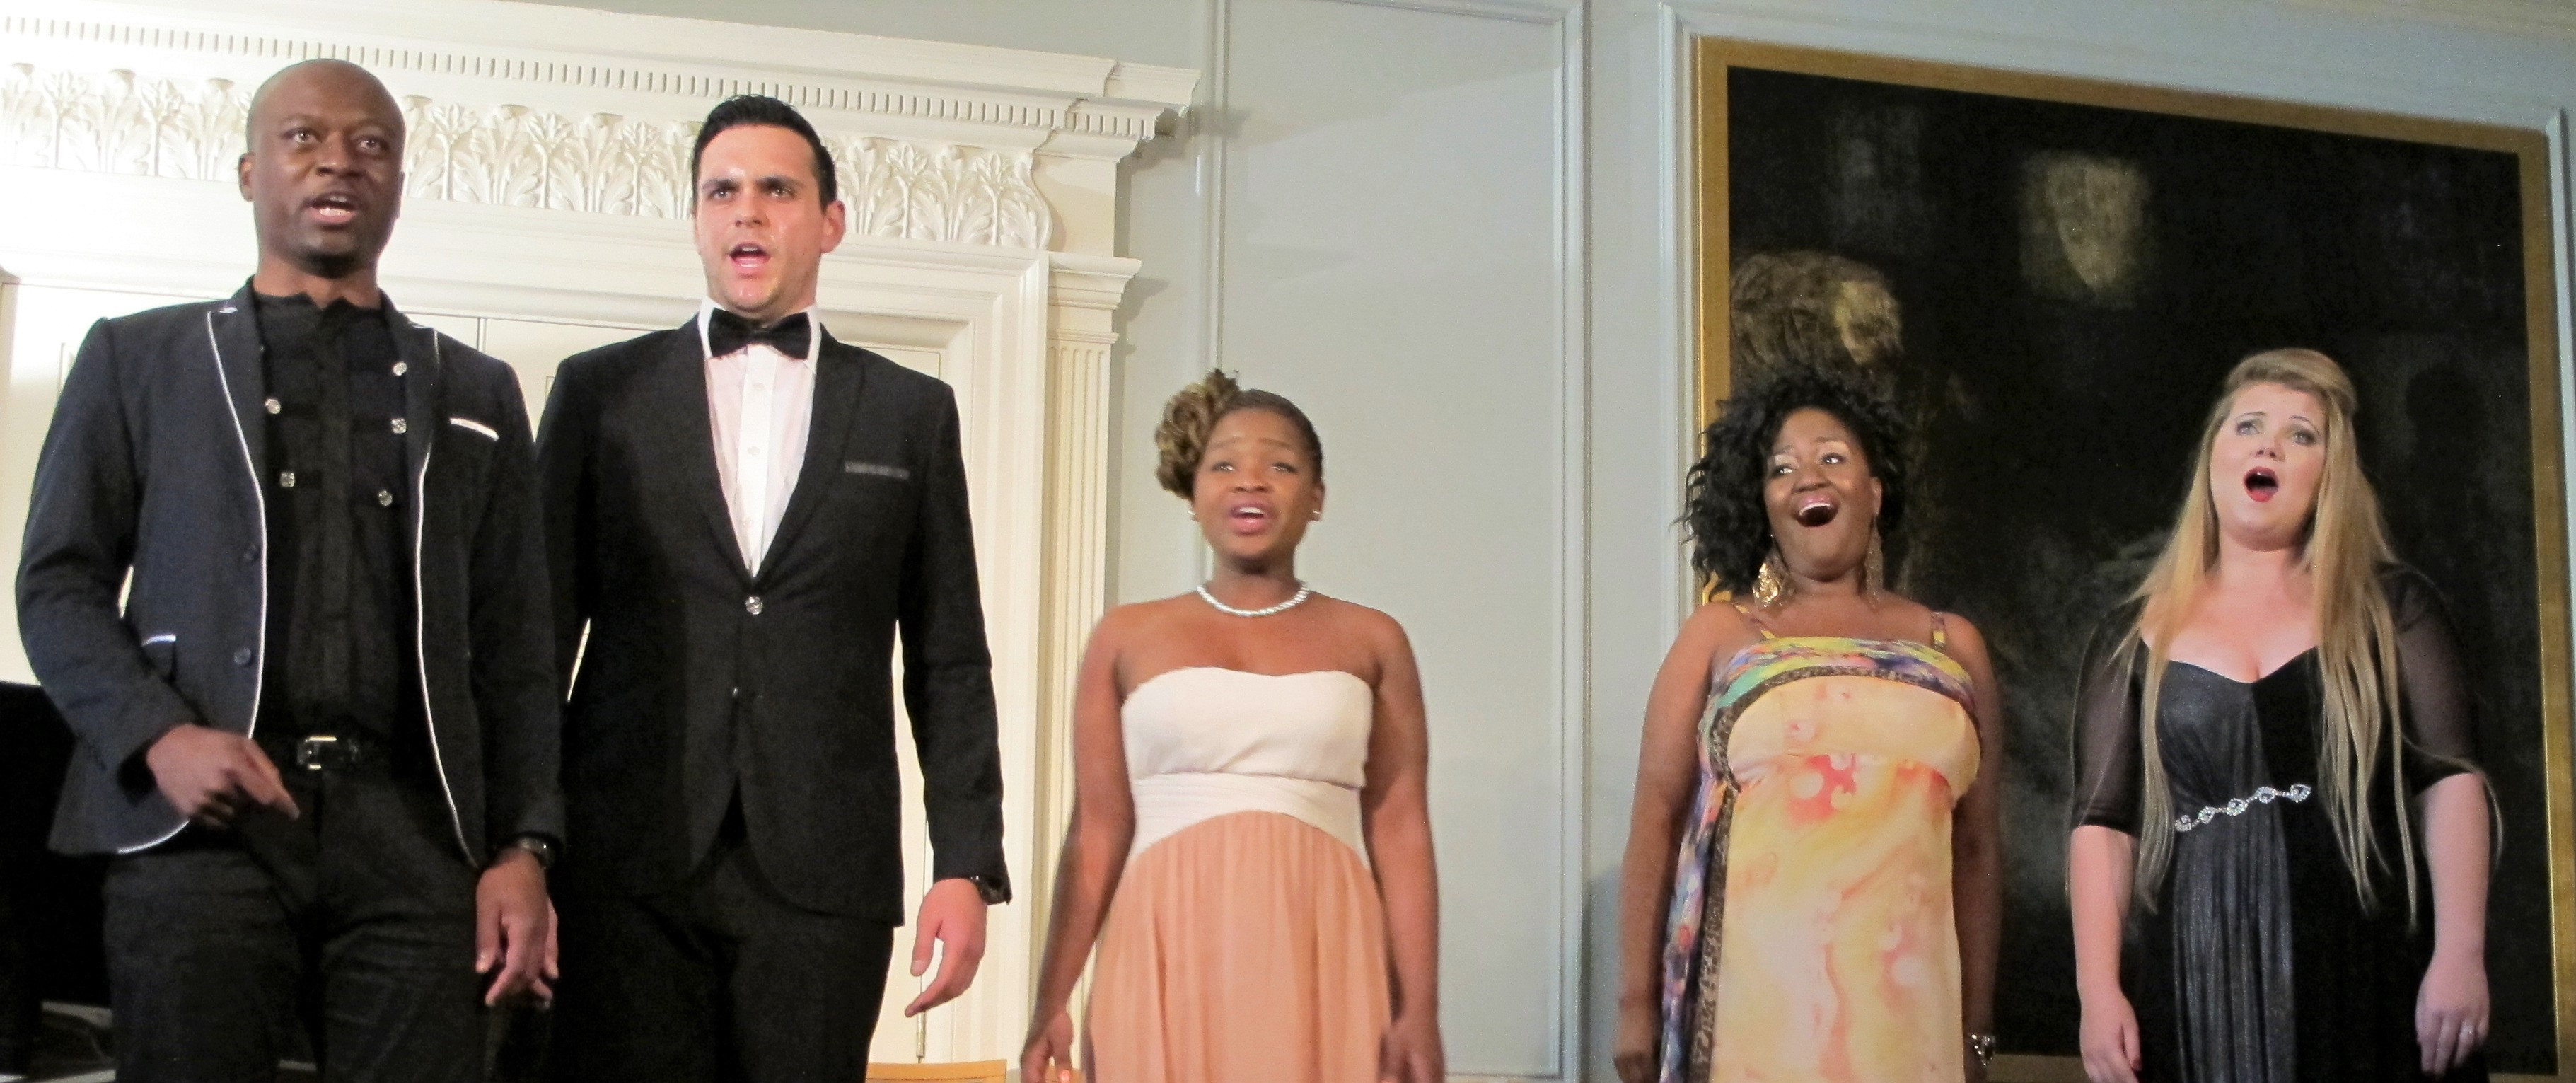 UCT Opera Evening at the home of Sir Vernon and Lady Ellis